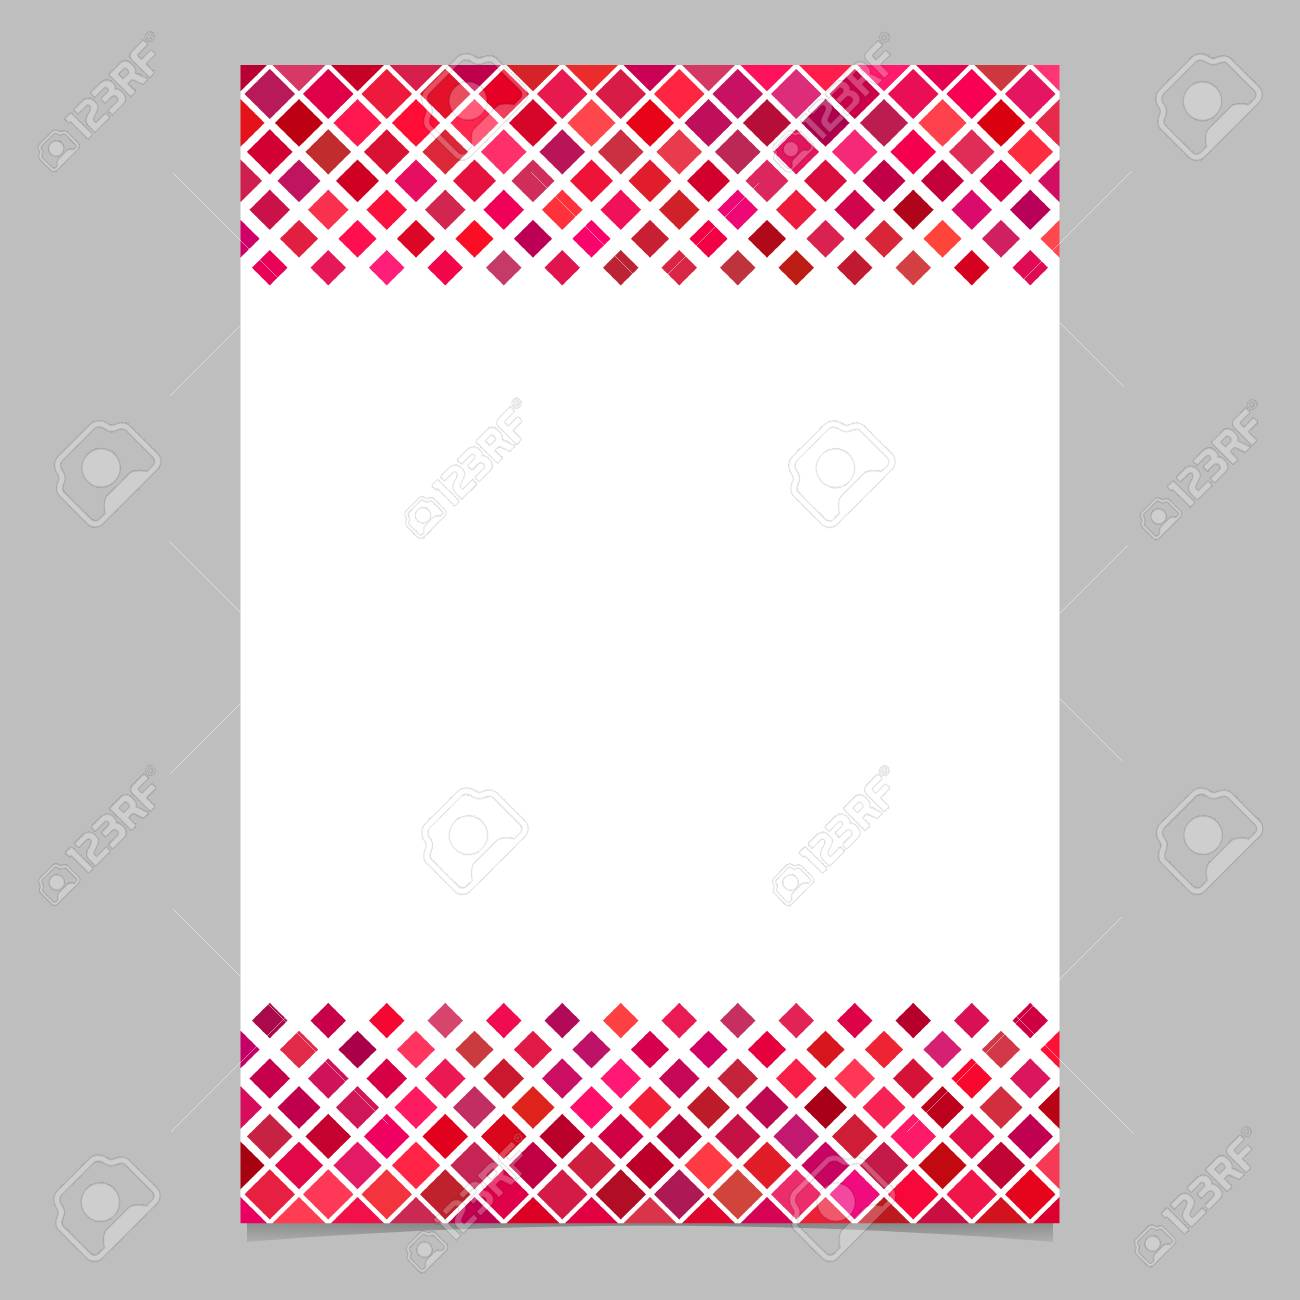 Diagonal square pattern page border template vector graphic diagonal square pattern page border template vector graphic design from squares in red tones with voltagebd Images